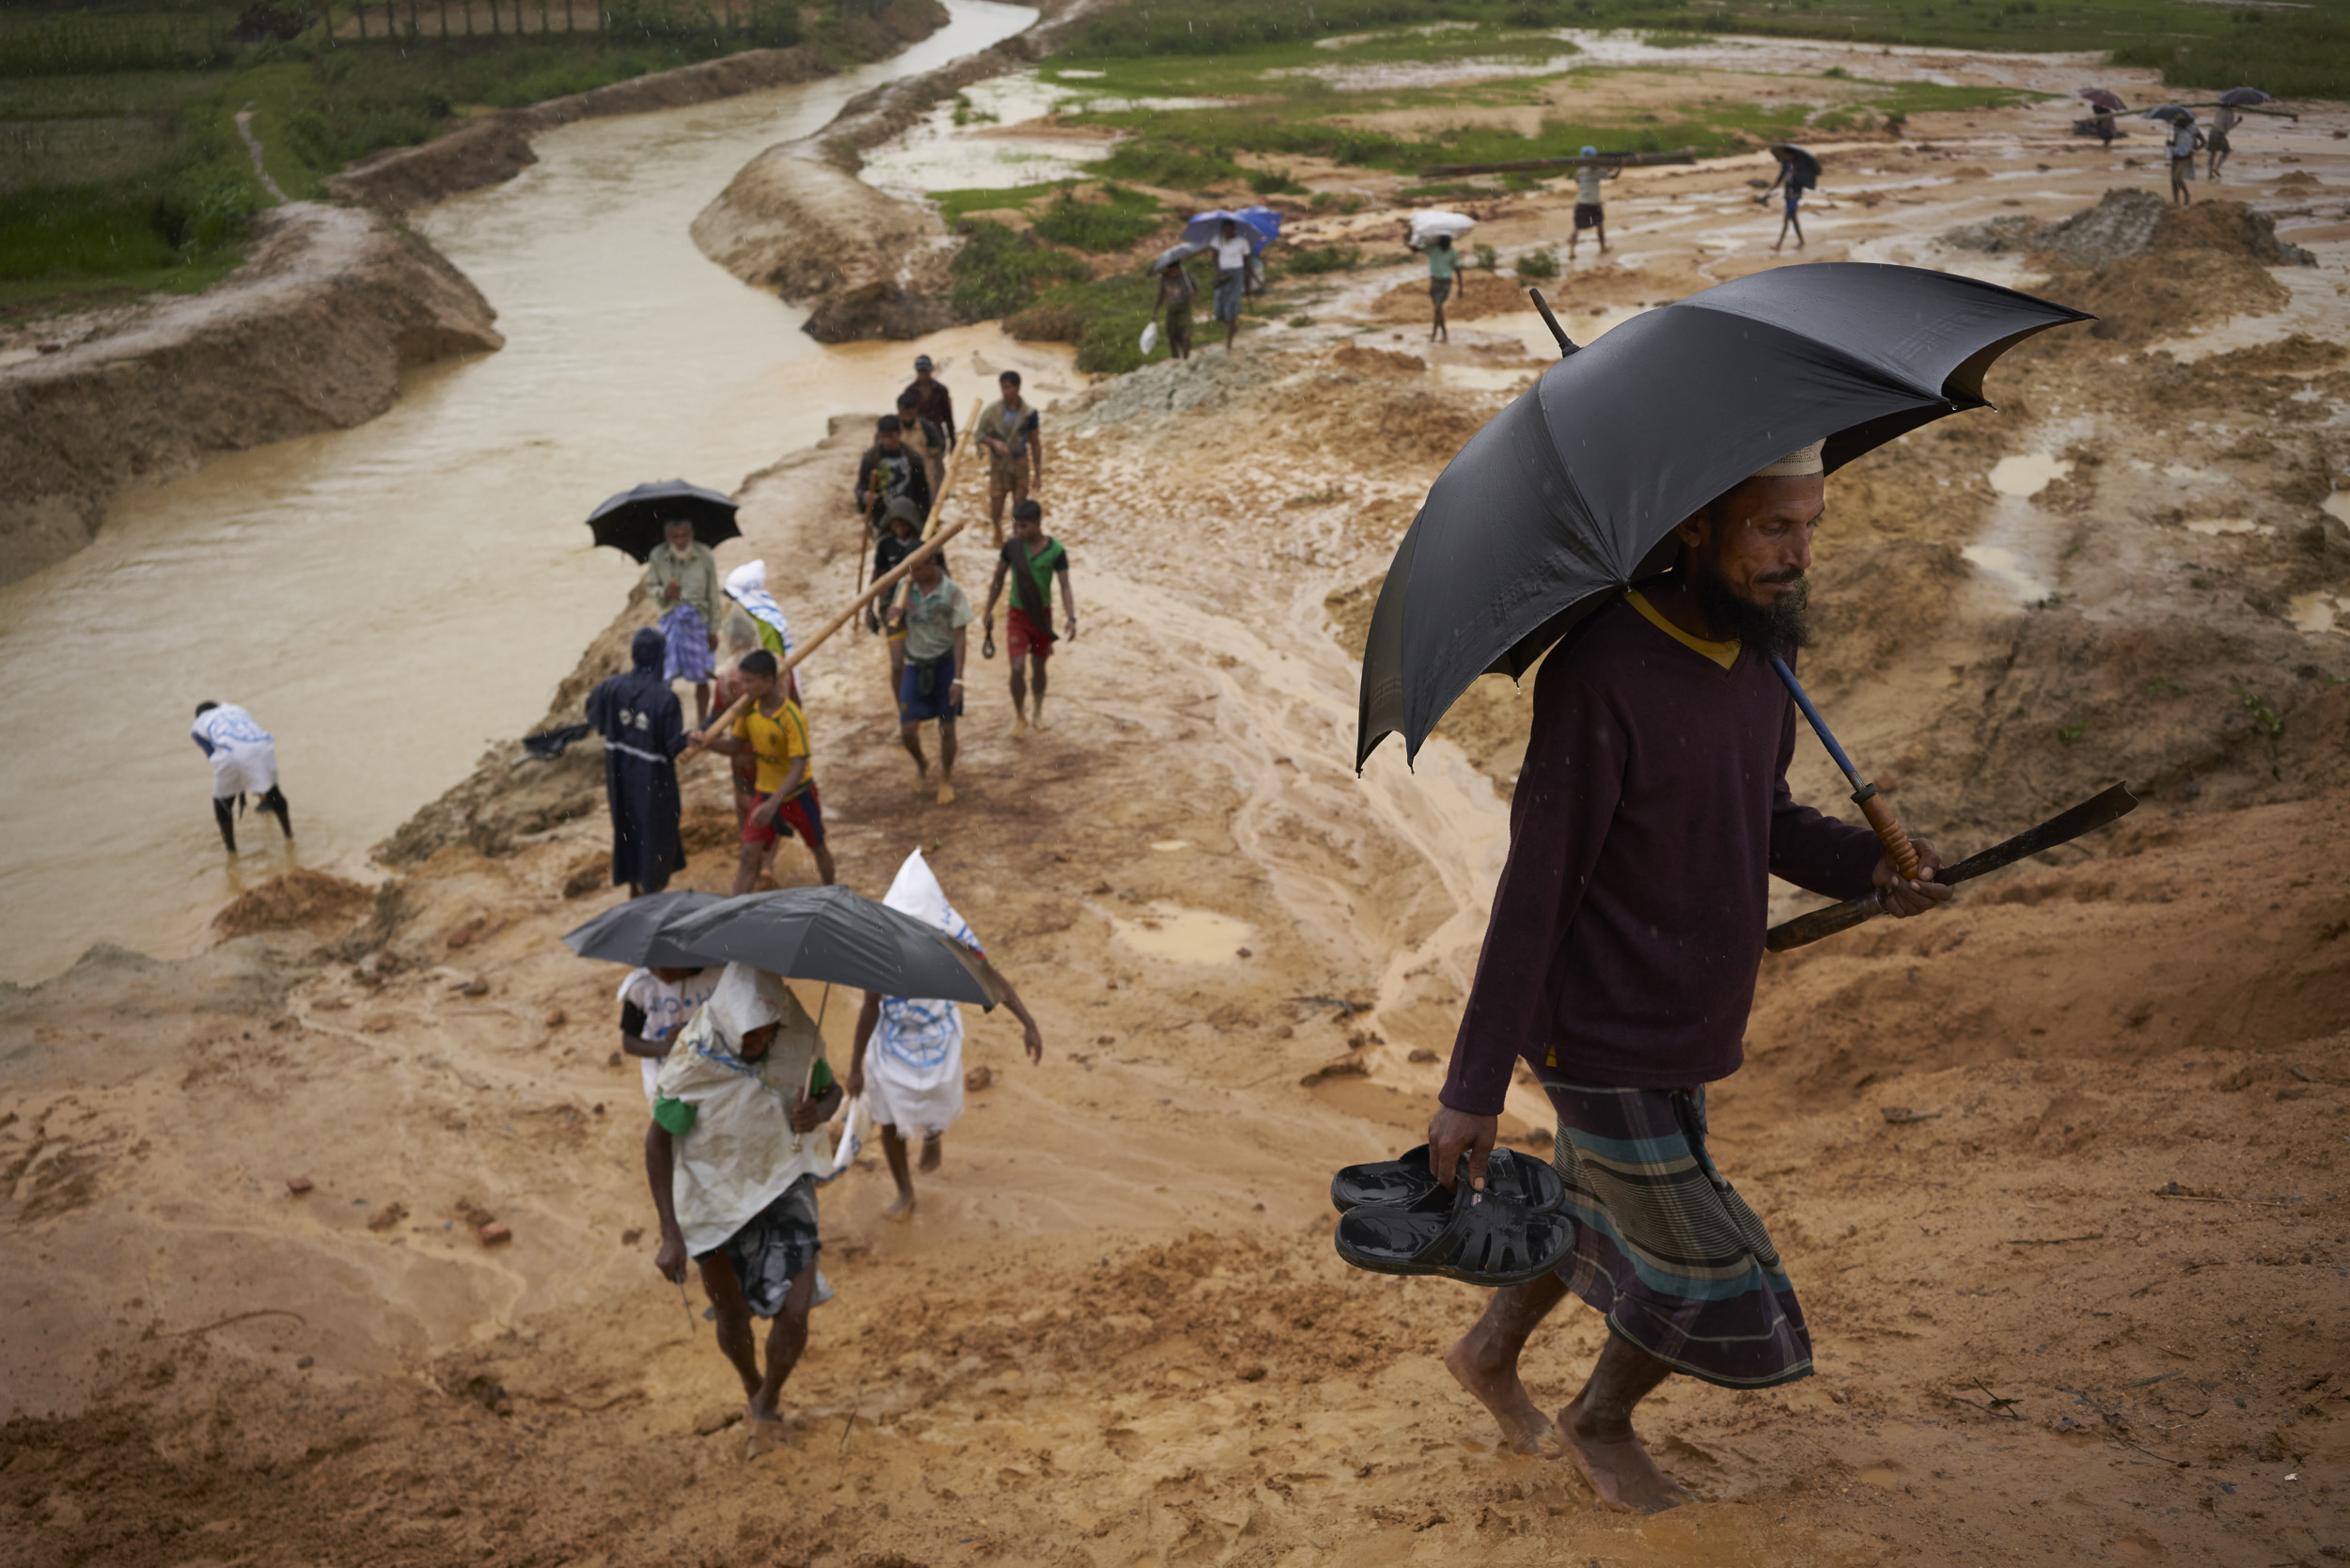 Rohingya refugees walk up an embankment leading to a road undergoing improvement work, in Kutupalong Expansion Site for Rohingya refugees, Ukhia, Cox's Bazar District, Bangladesh.